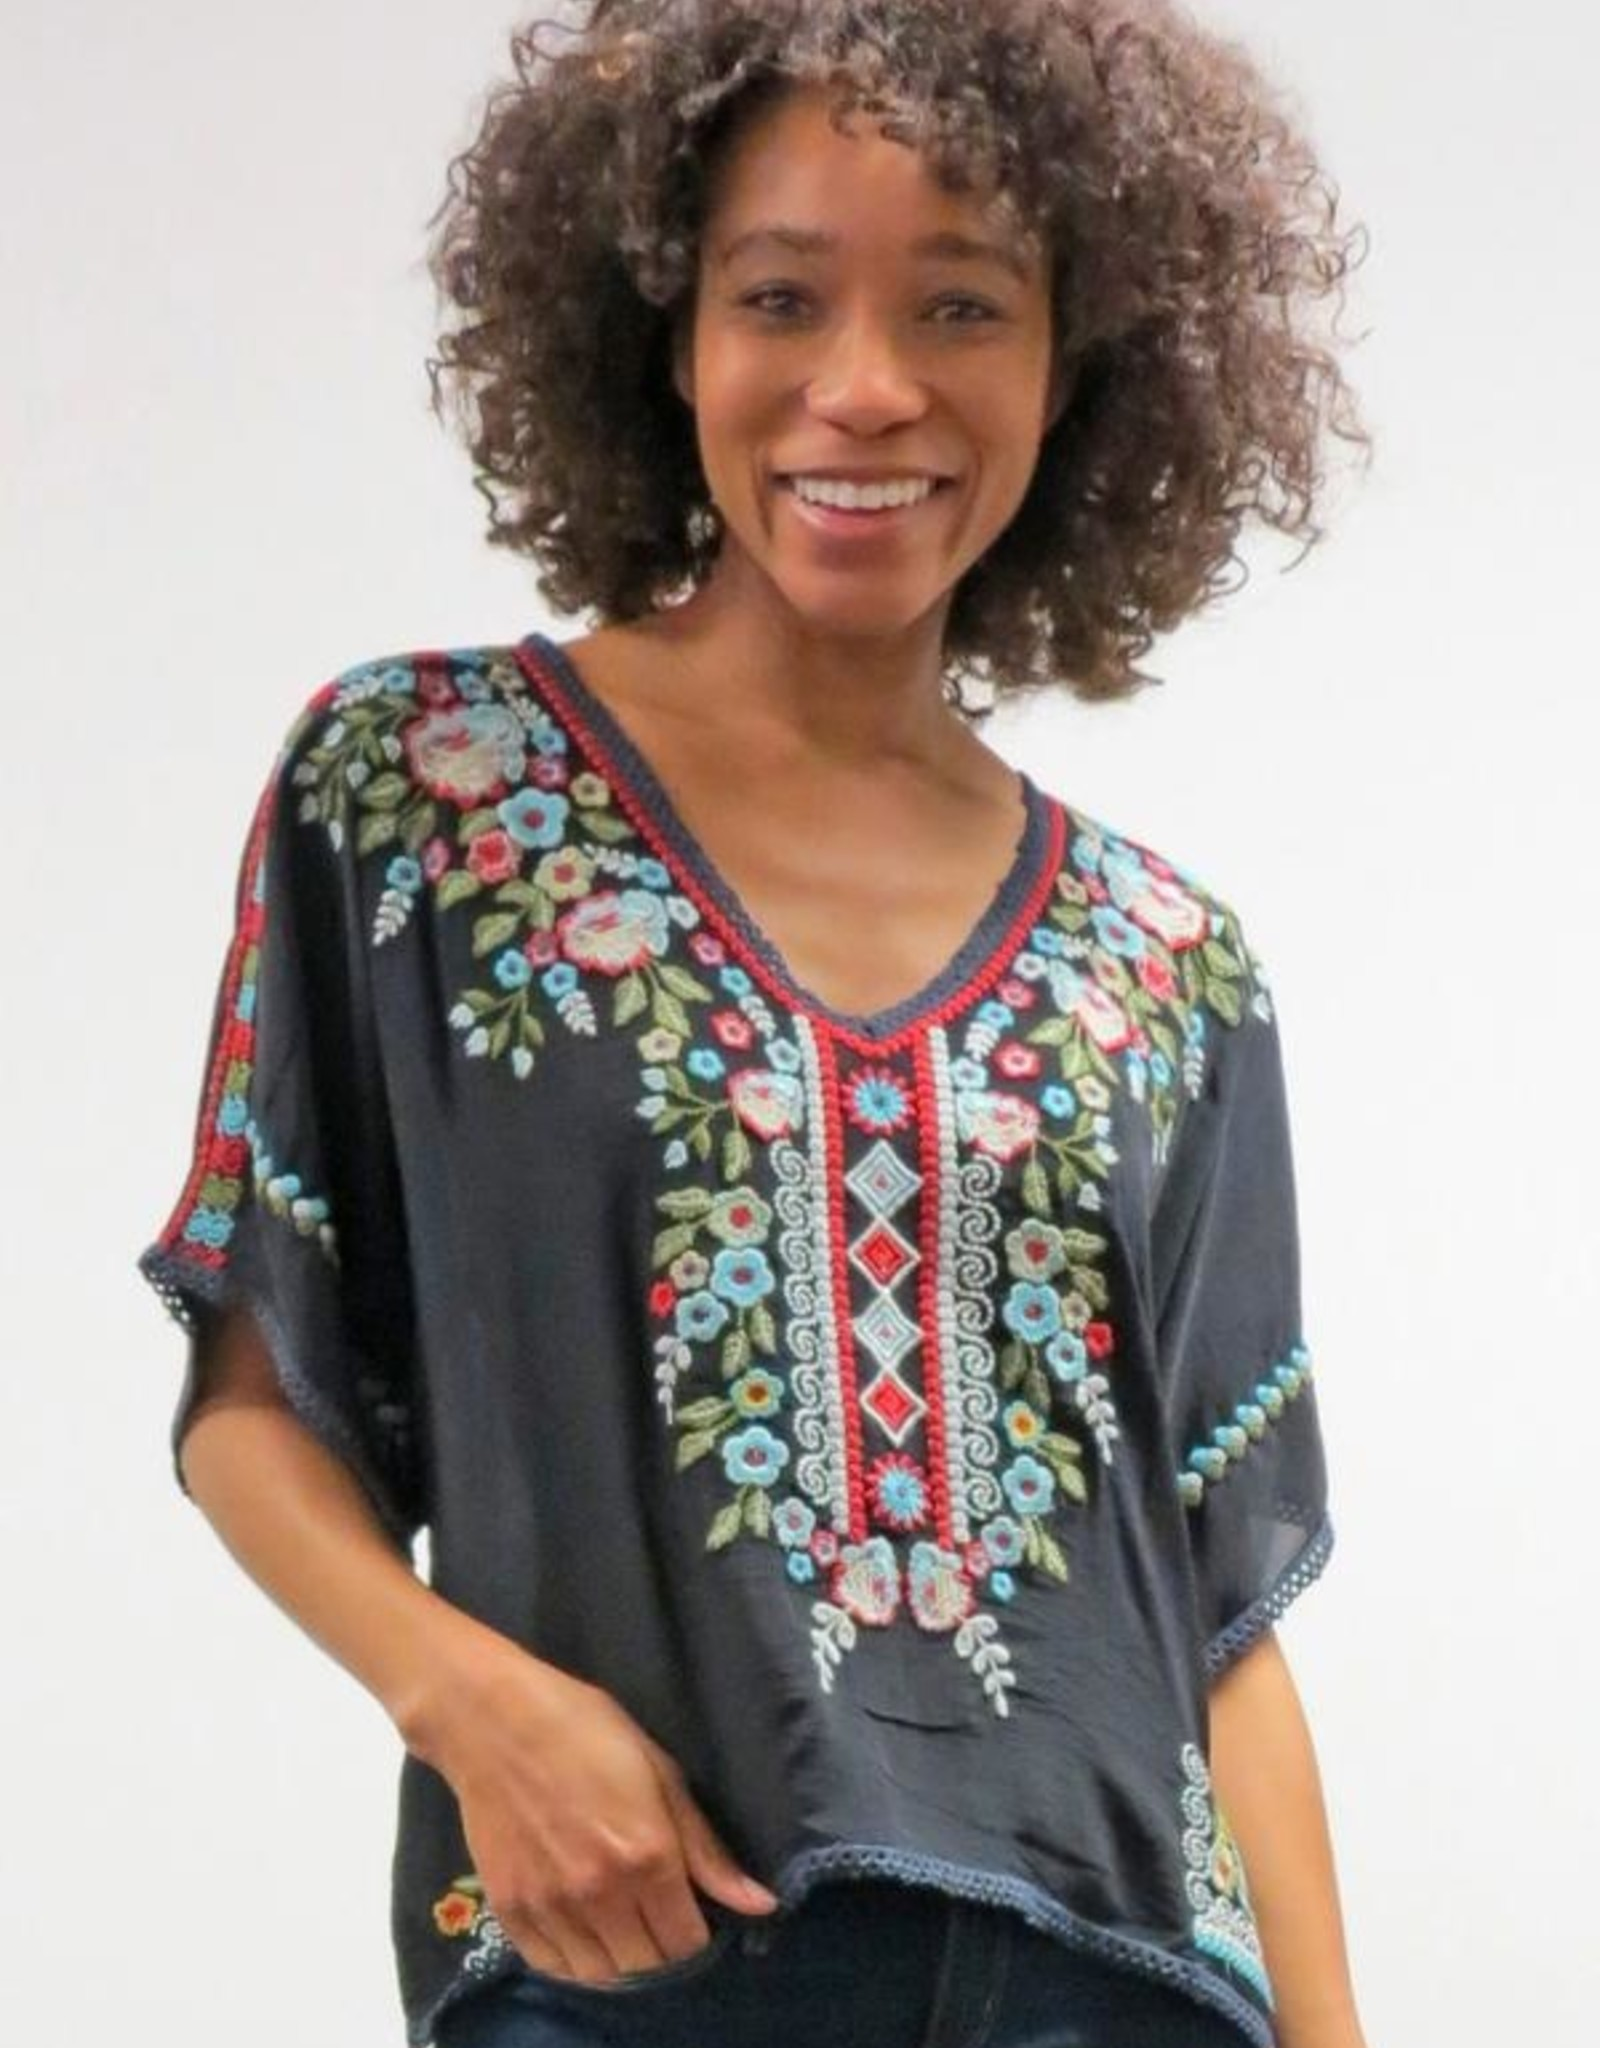 Caite Embroidered Scarlet Blouse